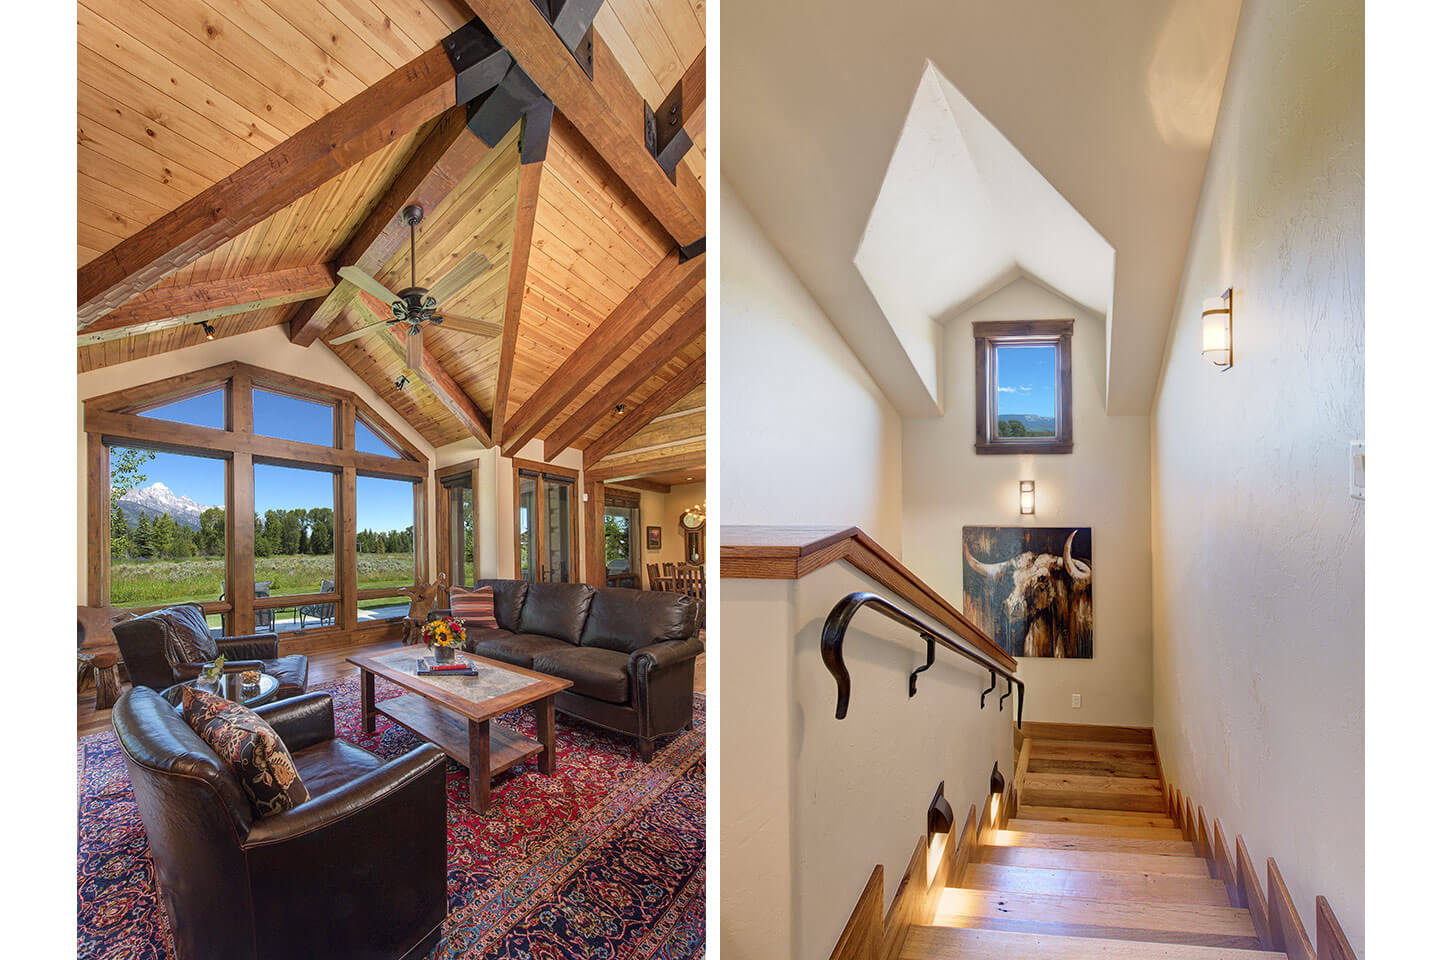 Living room with vaulted wood ceiling and staircase